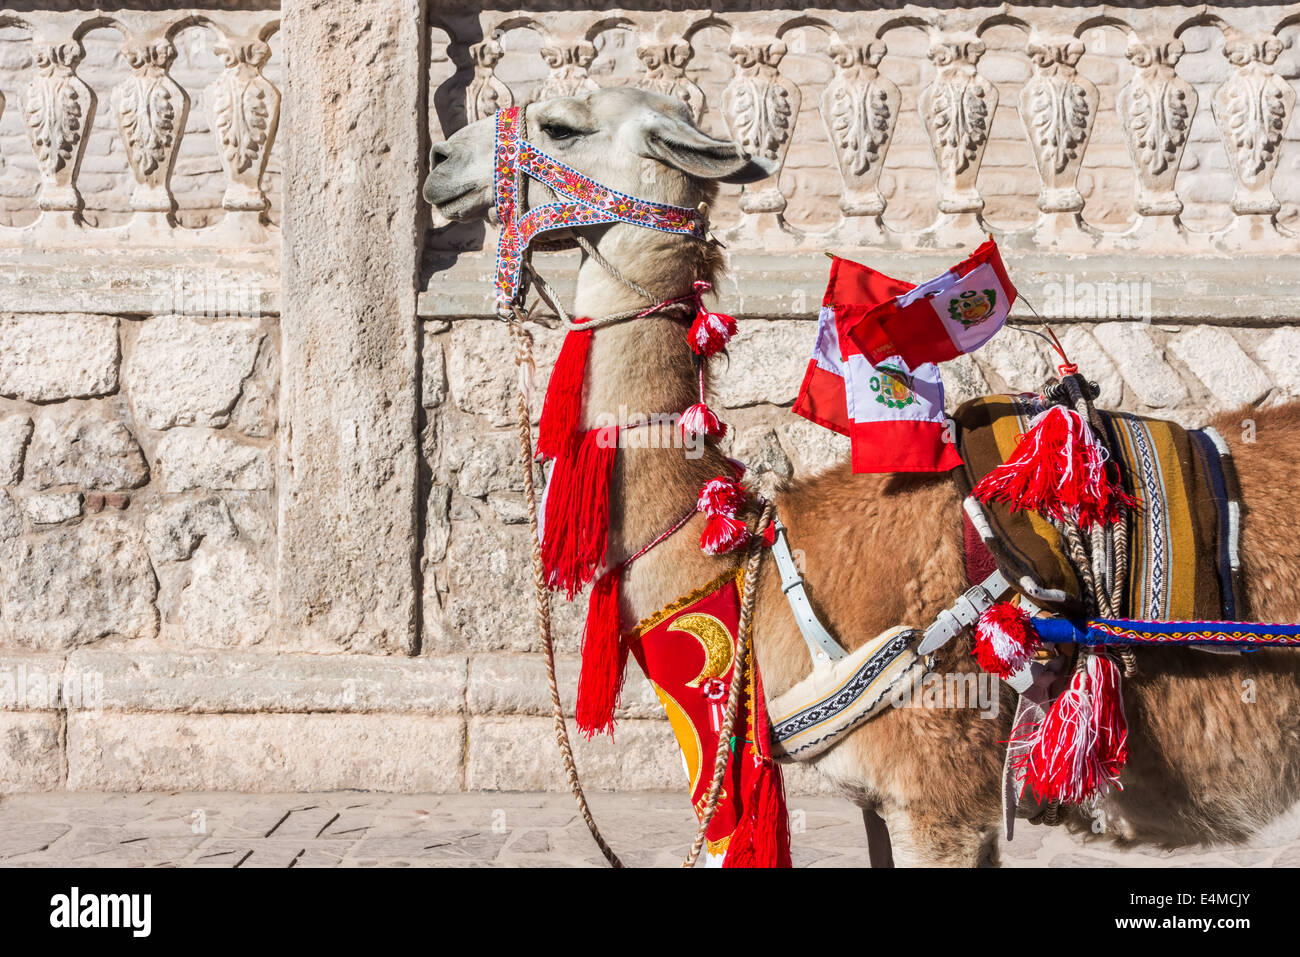 Llama with peruvian flags in the peruvian Andes at Arequipa Peru - Stock Image